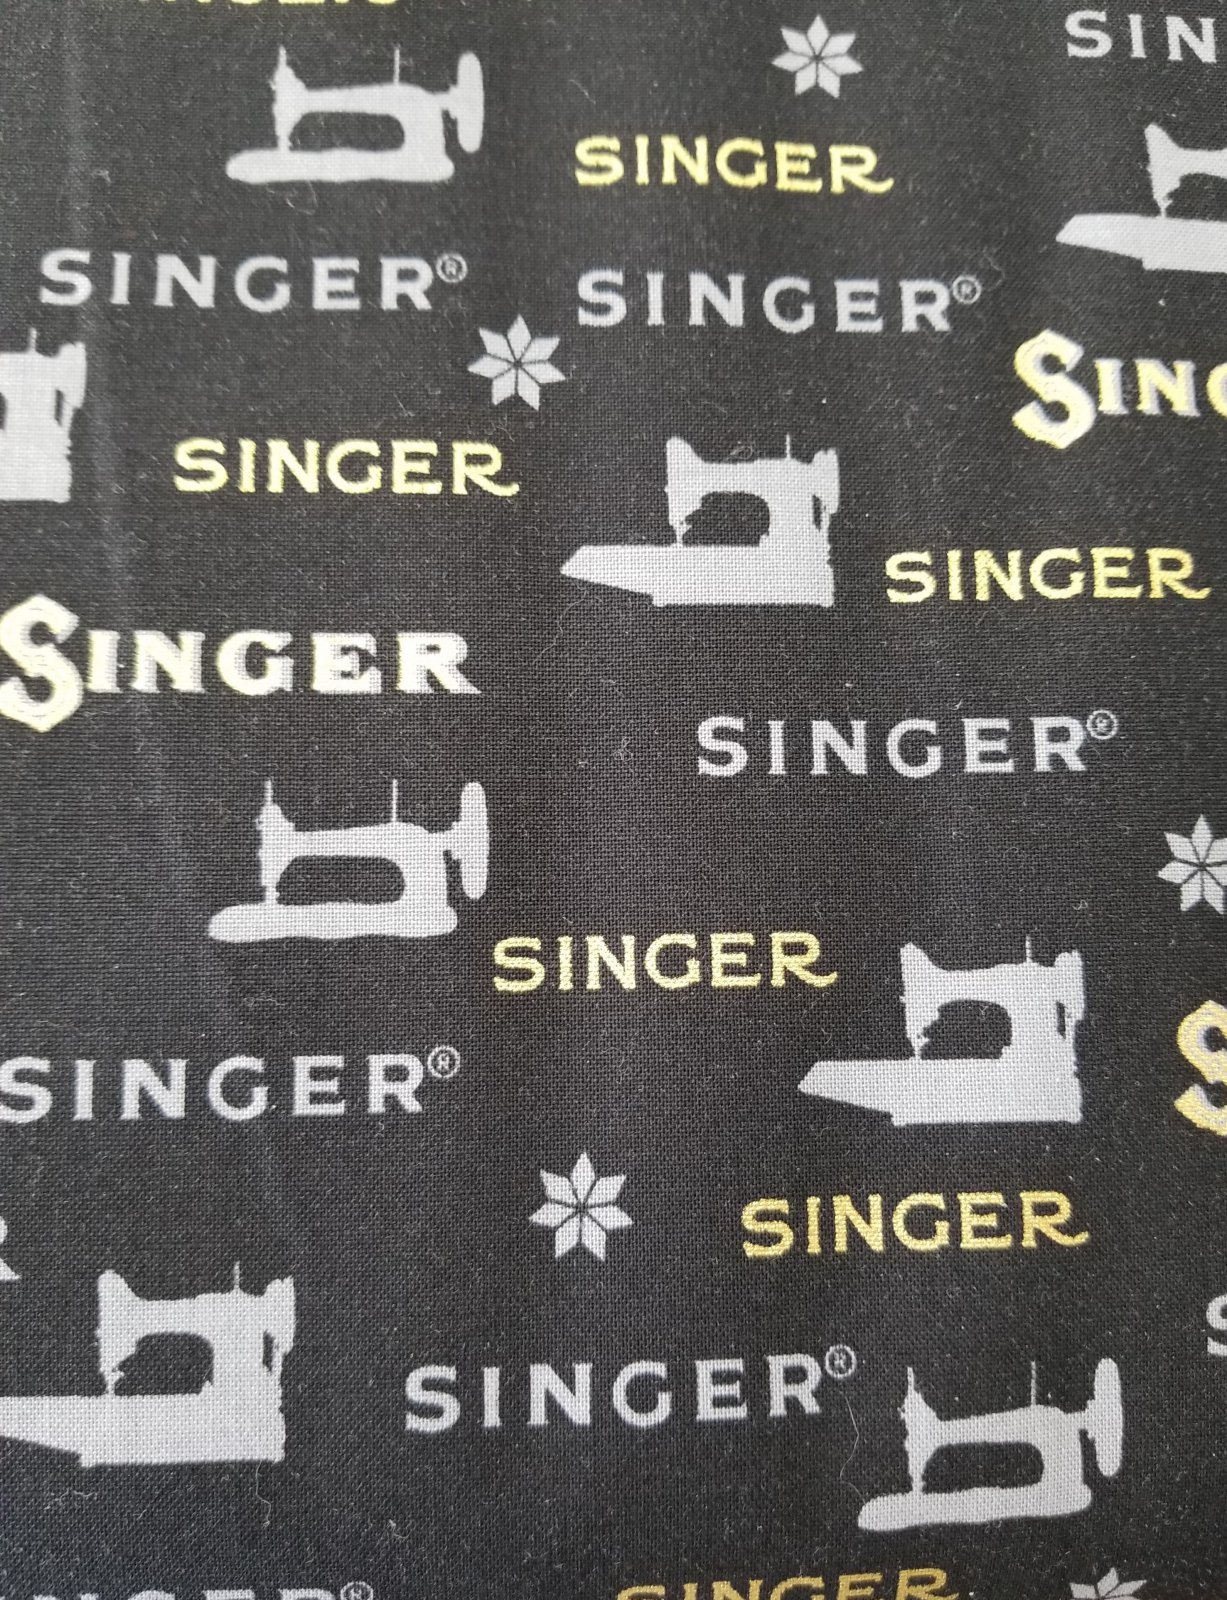 Sewing with Singer Black Background Gold Lettering